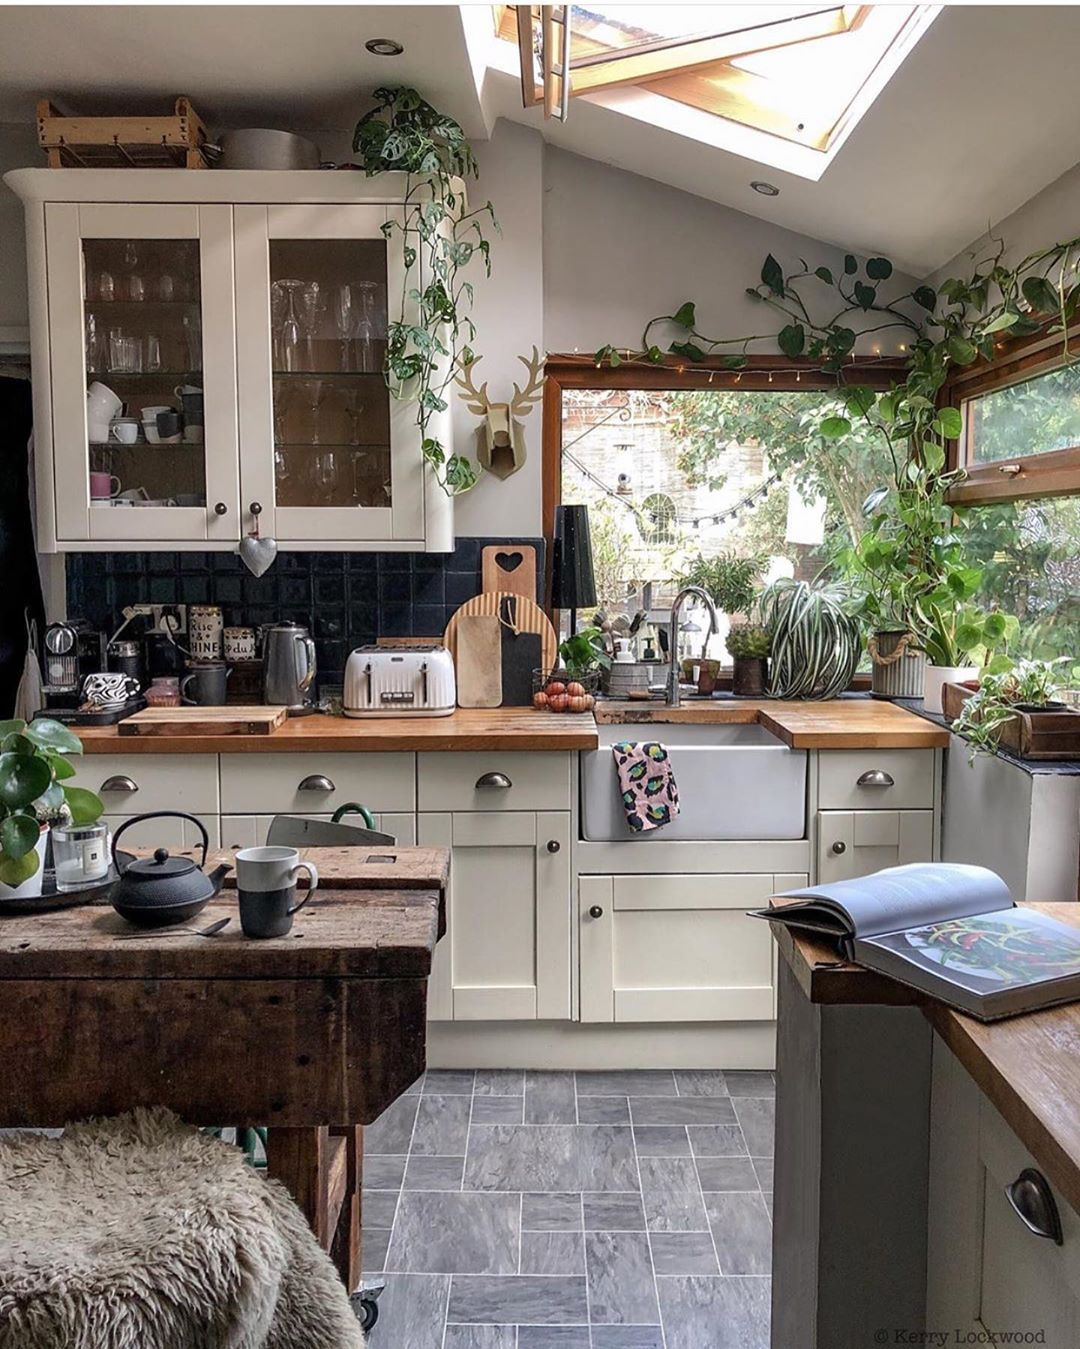 Vibeke J Dyremyhr On Instagram This Cozy Kitchen From Kerrylockwood Don T Miss All The Fab Inspira Boho Kitchen Decor Boho Kitchen Kitchen Design